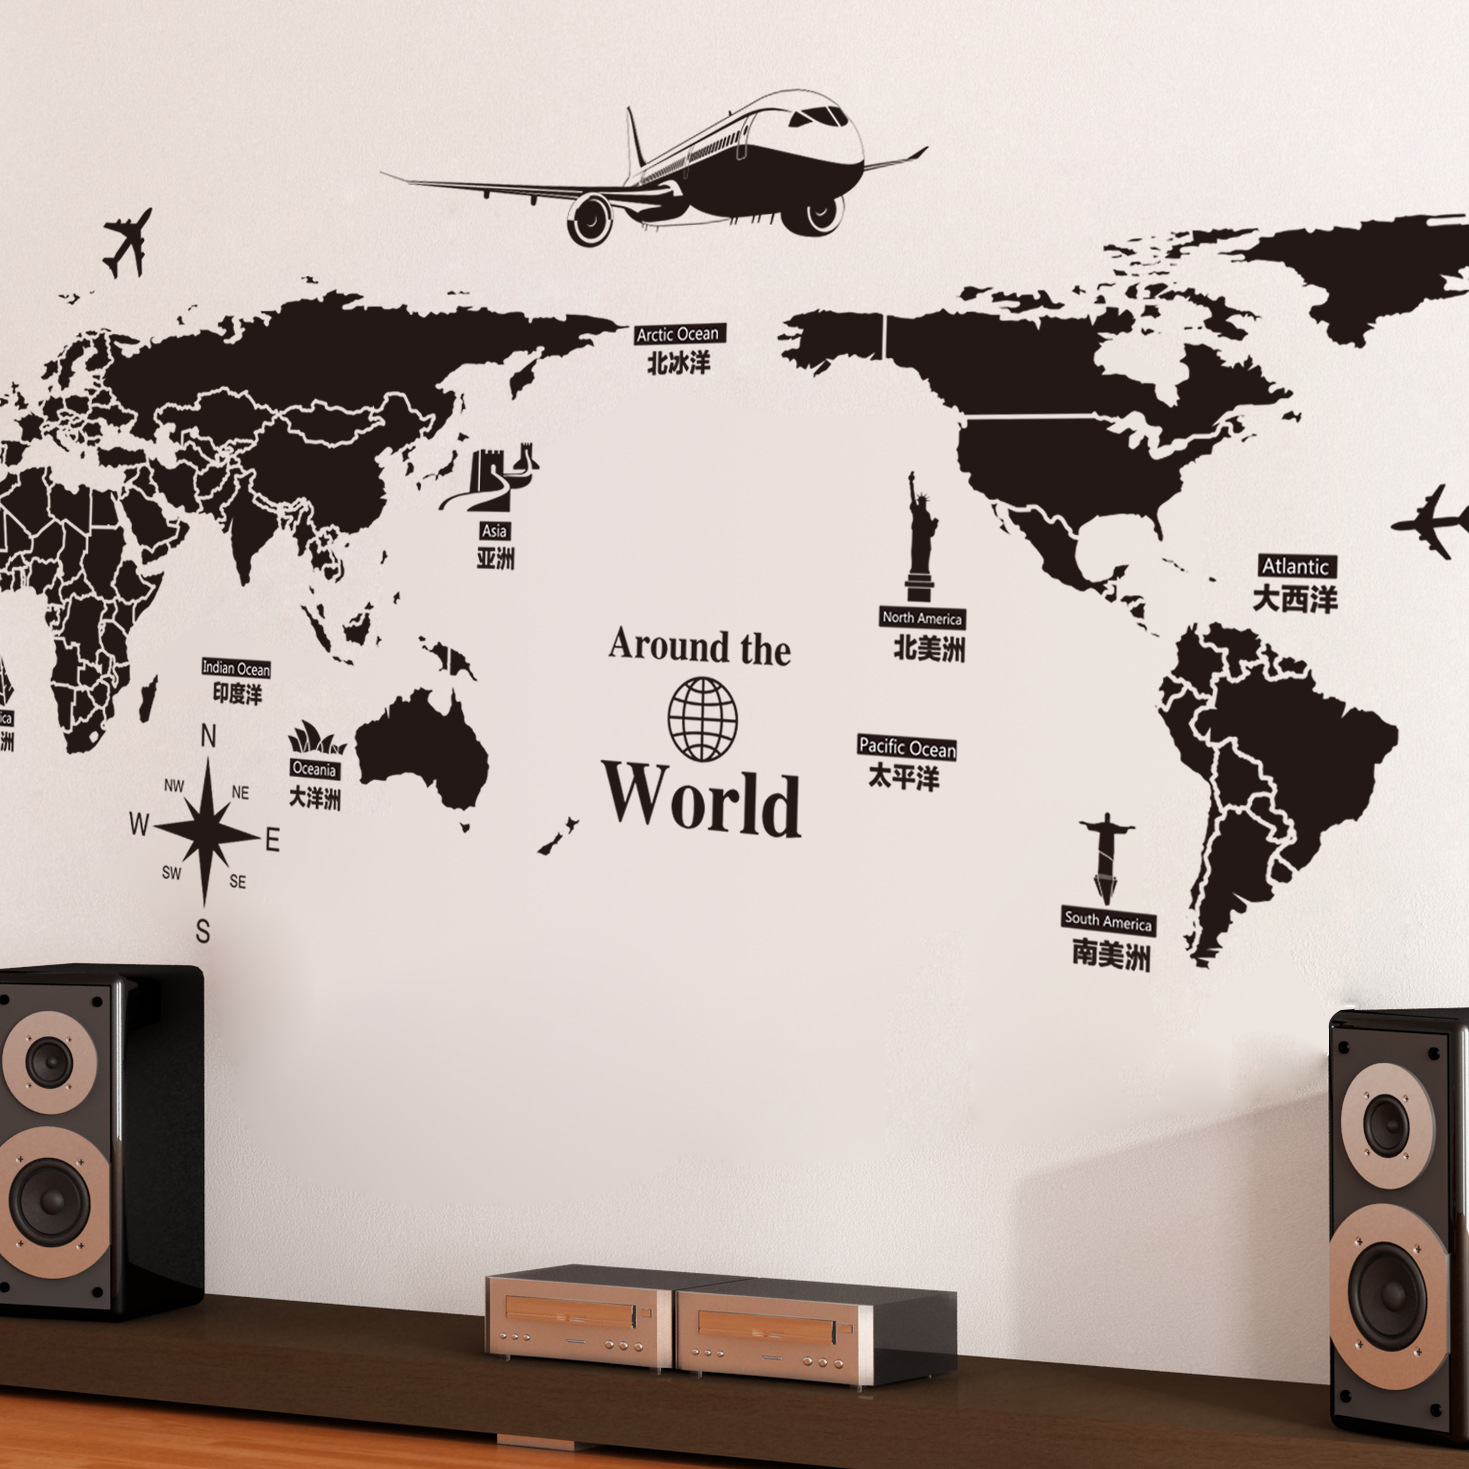 World map wall stickers removable pvc map of the world art decals world map wall stickers removable pvc map of the world art decals for living room home gumiabroncs Image collections